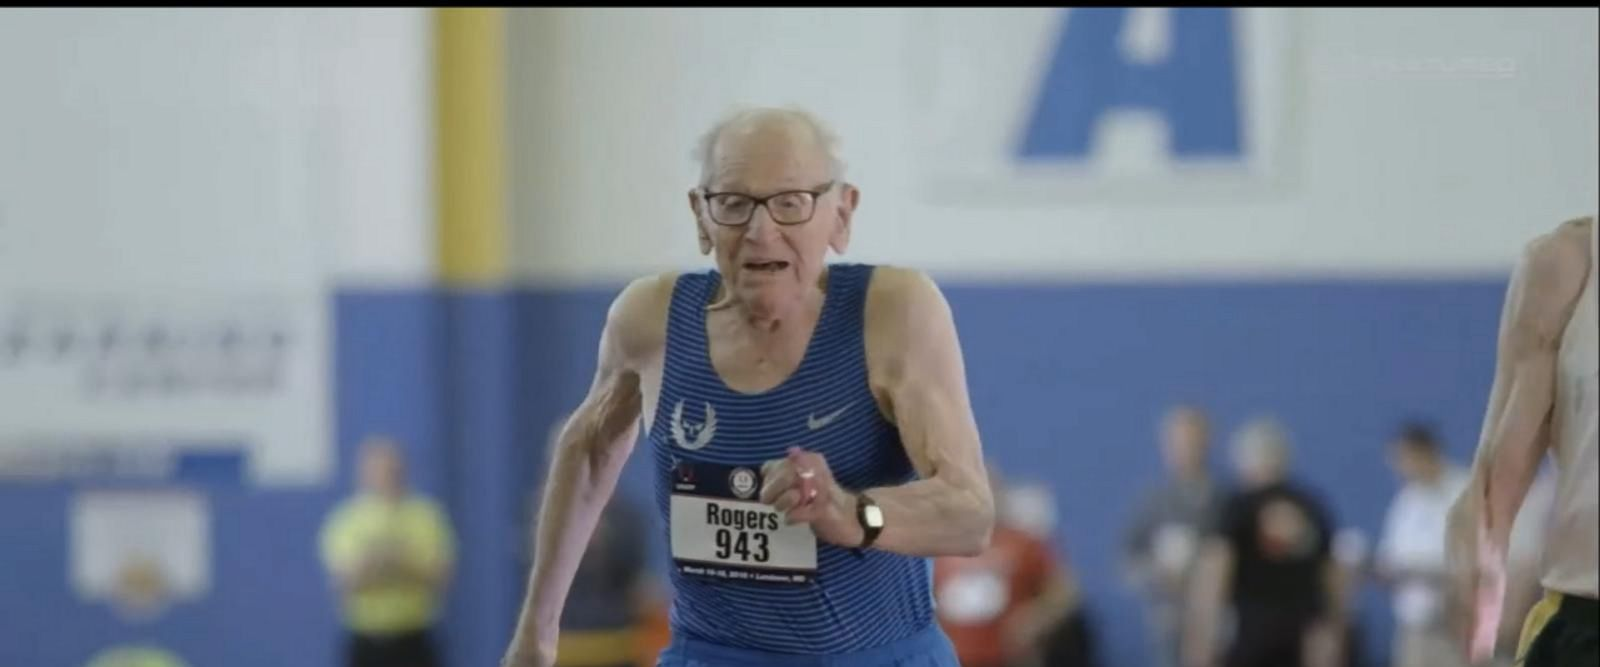 VIDEO: Centenarians break world records at track meet